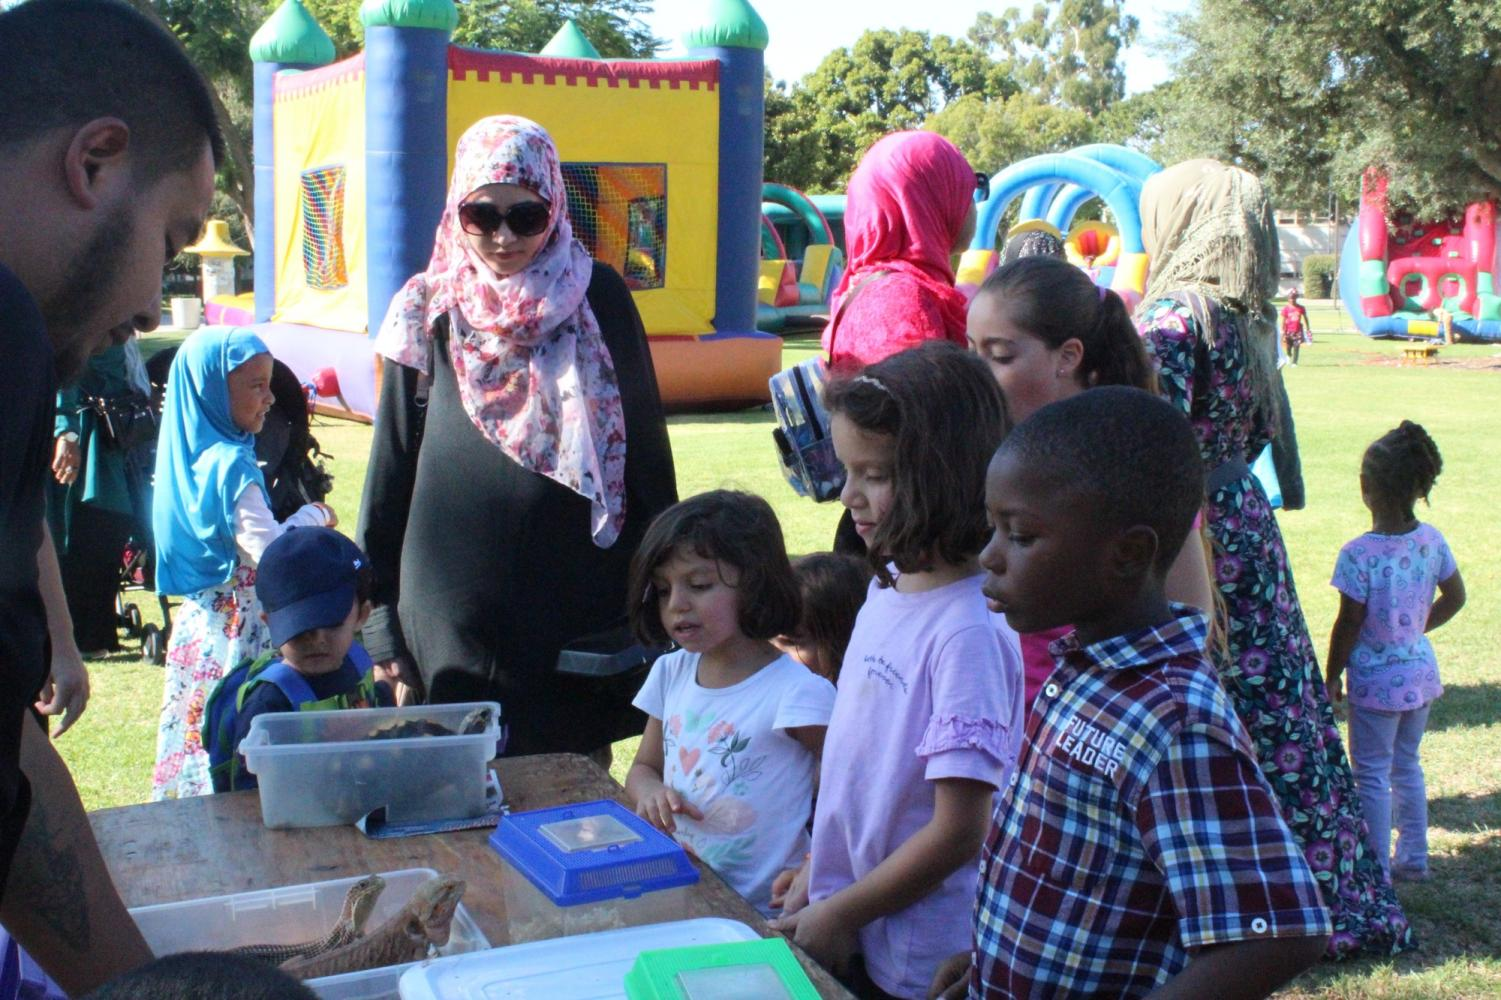 The Muslim Student Association at California State University Long Beach hosted their 13th annual Eid celebration following Eid Al-Adha, the Islamic festival of sacrifice. Muslim families and other folks alike were privy to the multiple activities provided for them to come together as a community on August 24, 2019.